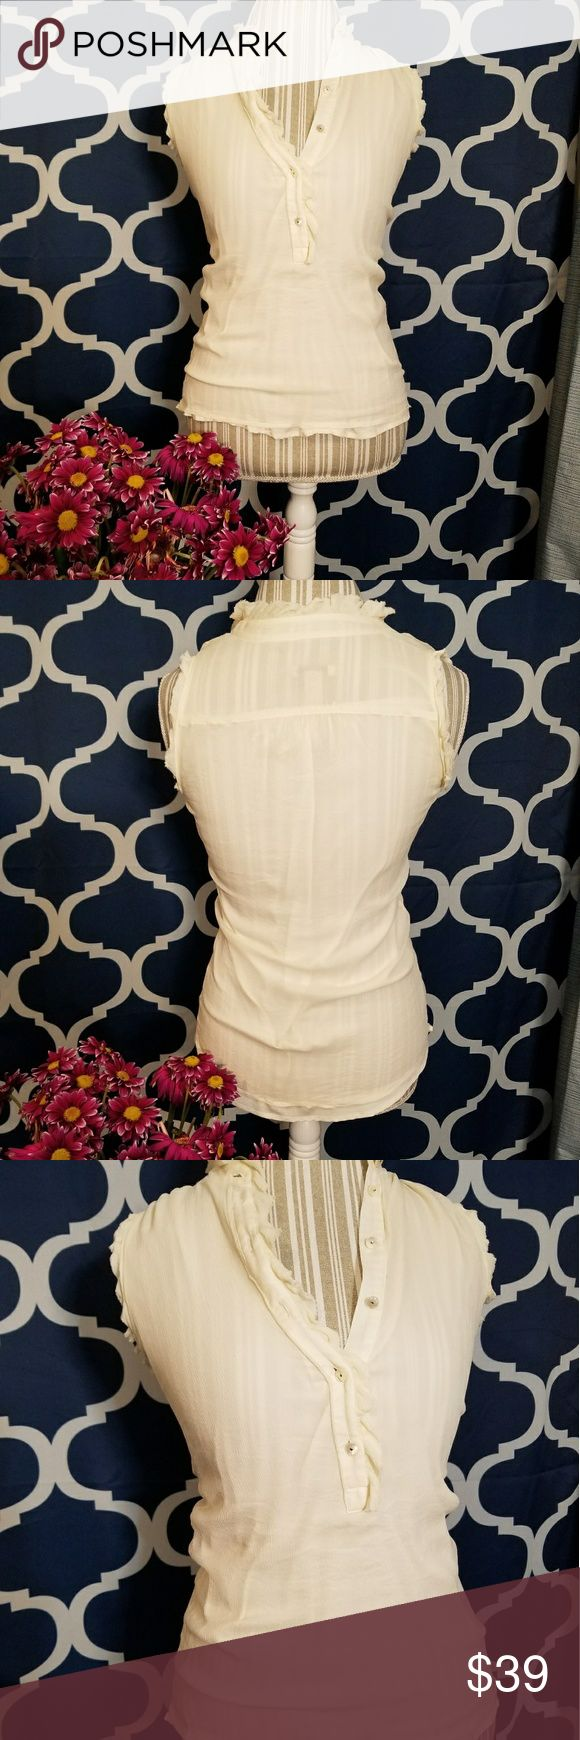 🌻🌺🌻NWOT J. CREW 100% SILK BLOUSE!! NWOT J. CREW 100% SILK BLOUSE!! Size zero but fits me and I'm normally a small. Has SOME stretch but not major, my mannequin is a medium with 36.5 bust. Beautiful cream color with ruffle detail and half way button down! Bought at outlet store and never wore. Check out my other items to bundle and save on shipping! Offers accepted. I ship same or next day! J. Crew Tops